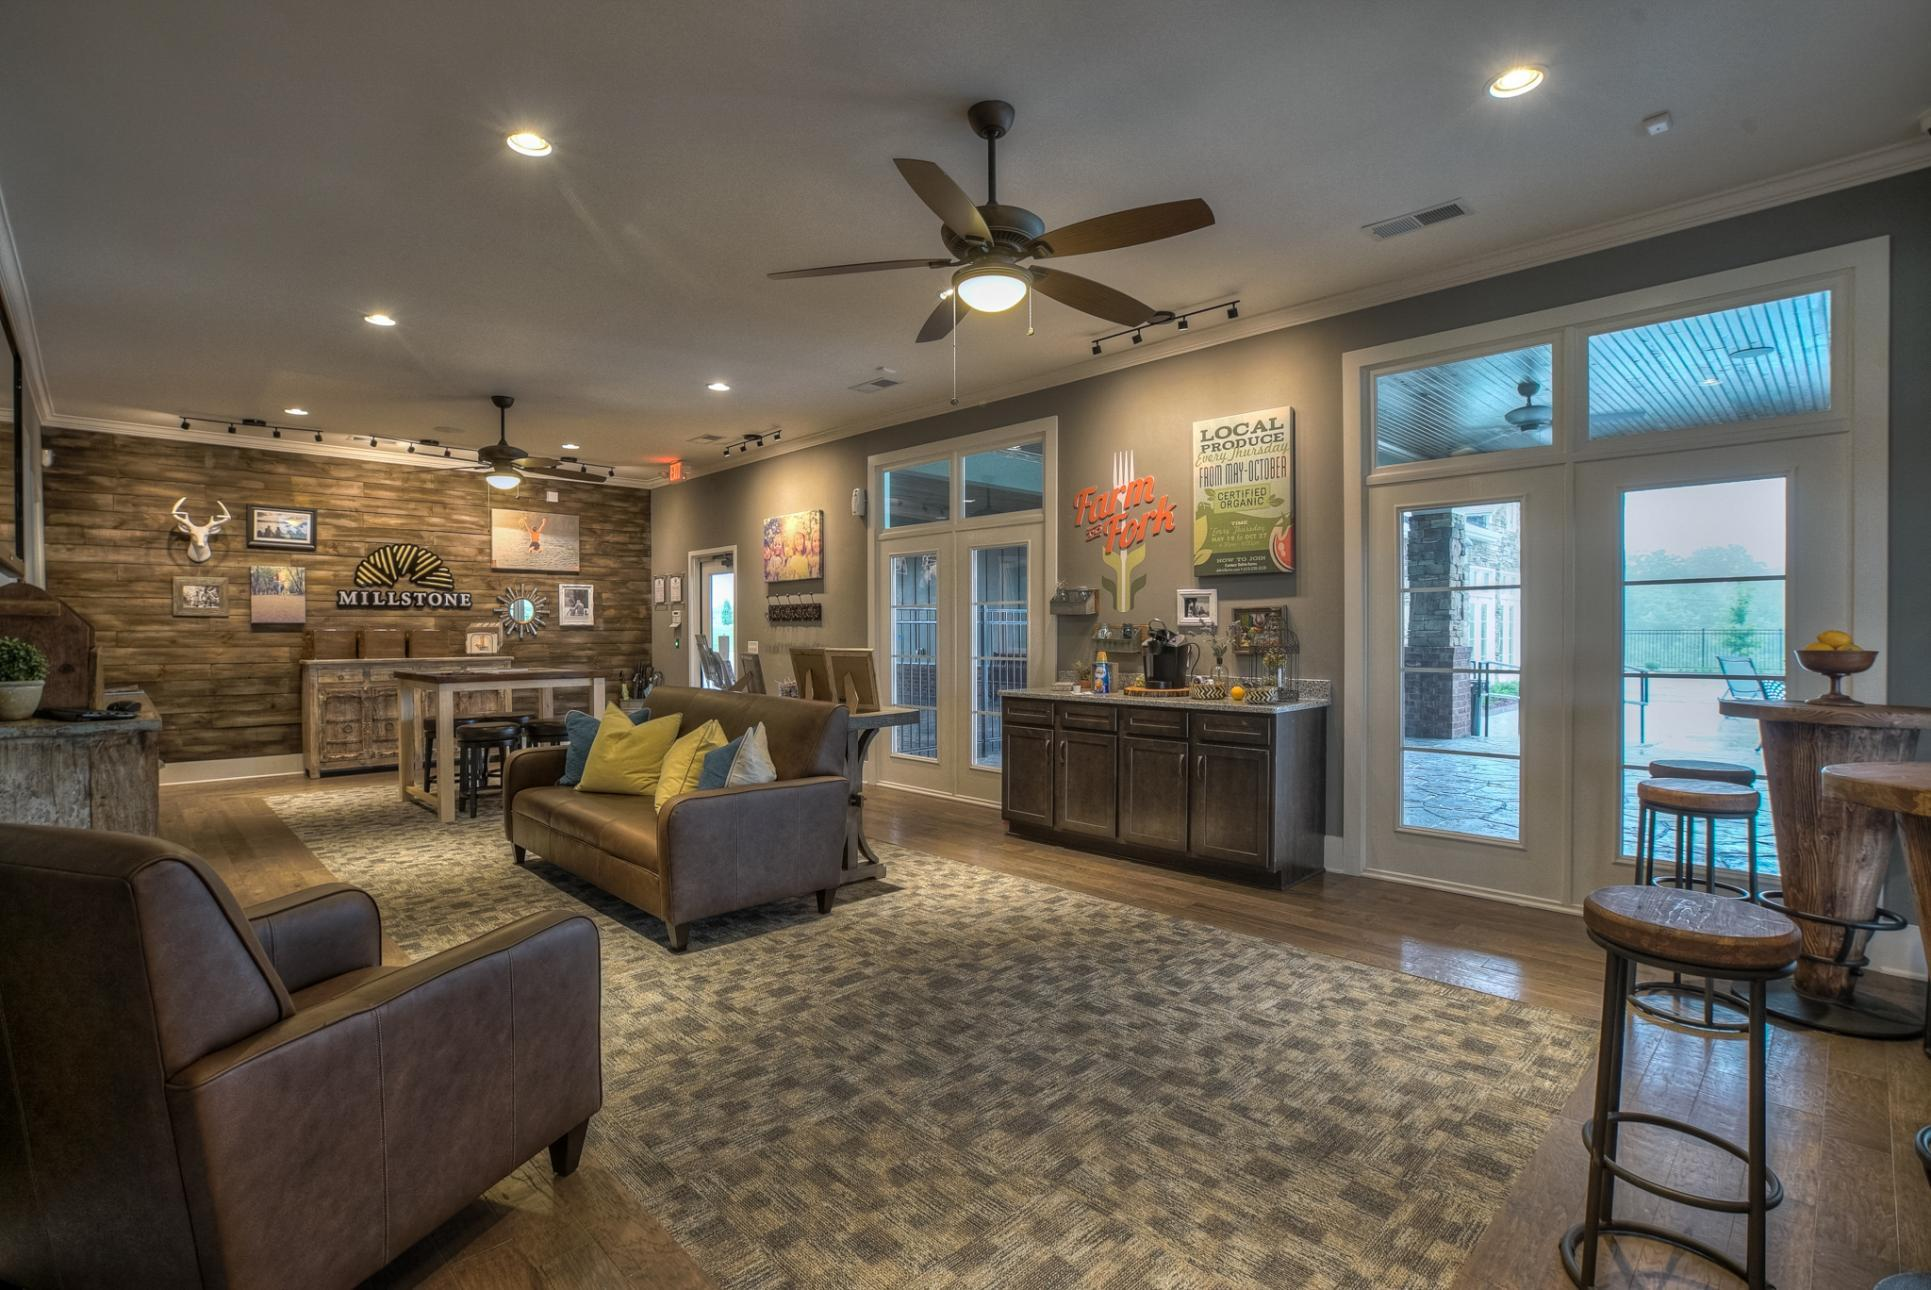 'Millstone Townhomes' by Goodall Homes in Nashville